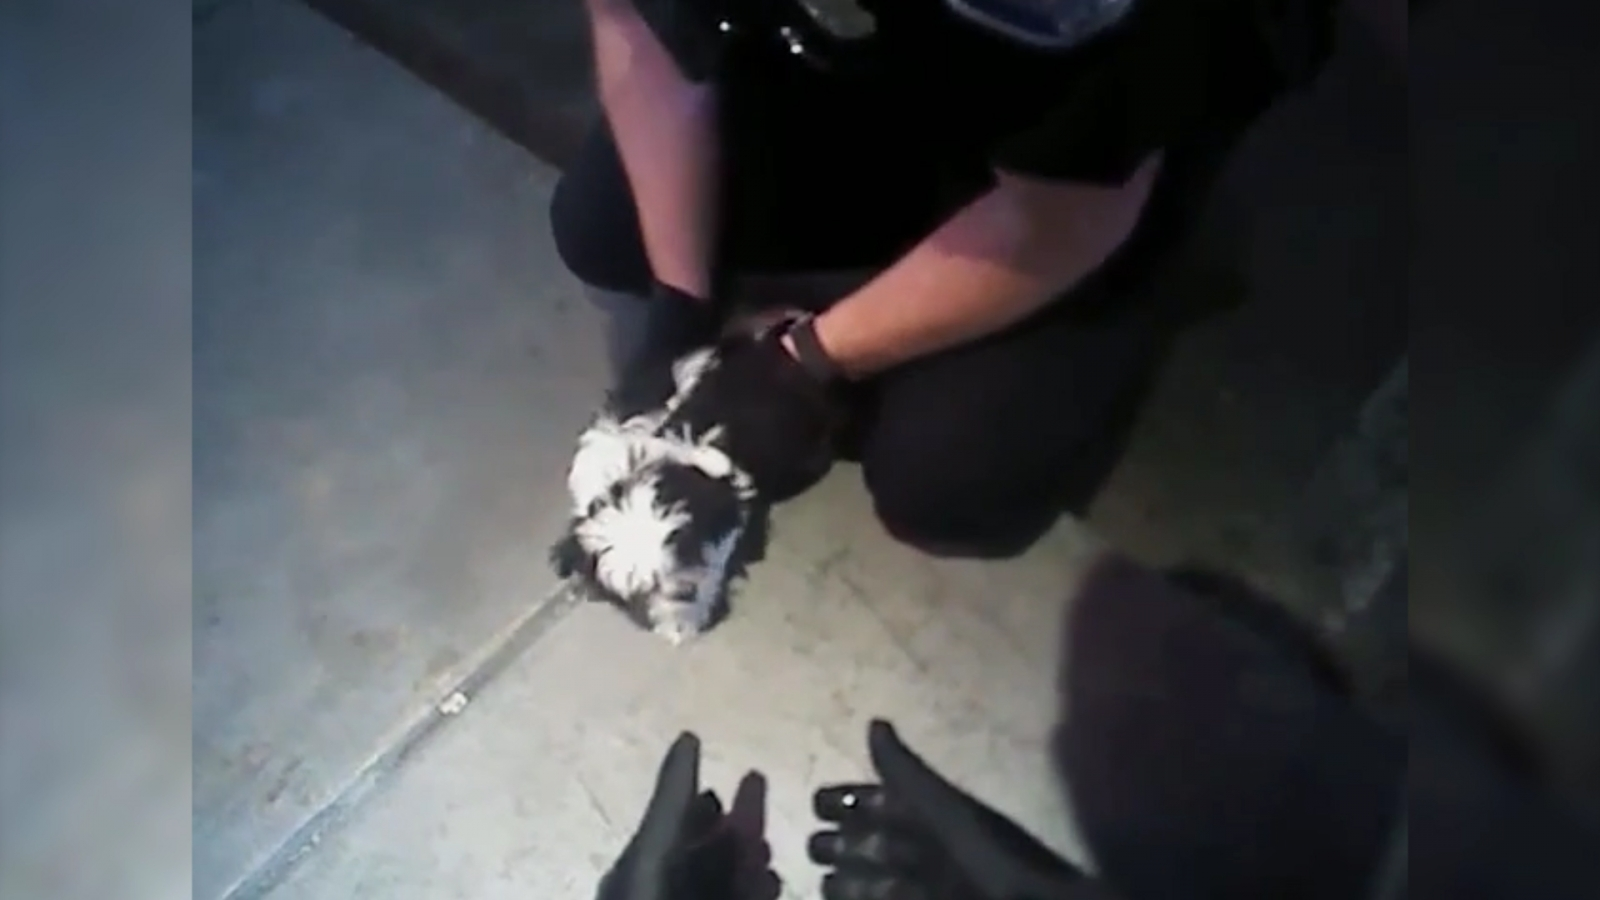 heroic-police-officers-rescue-choking-puppy